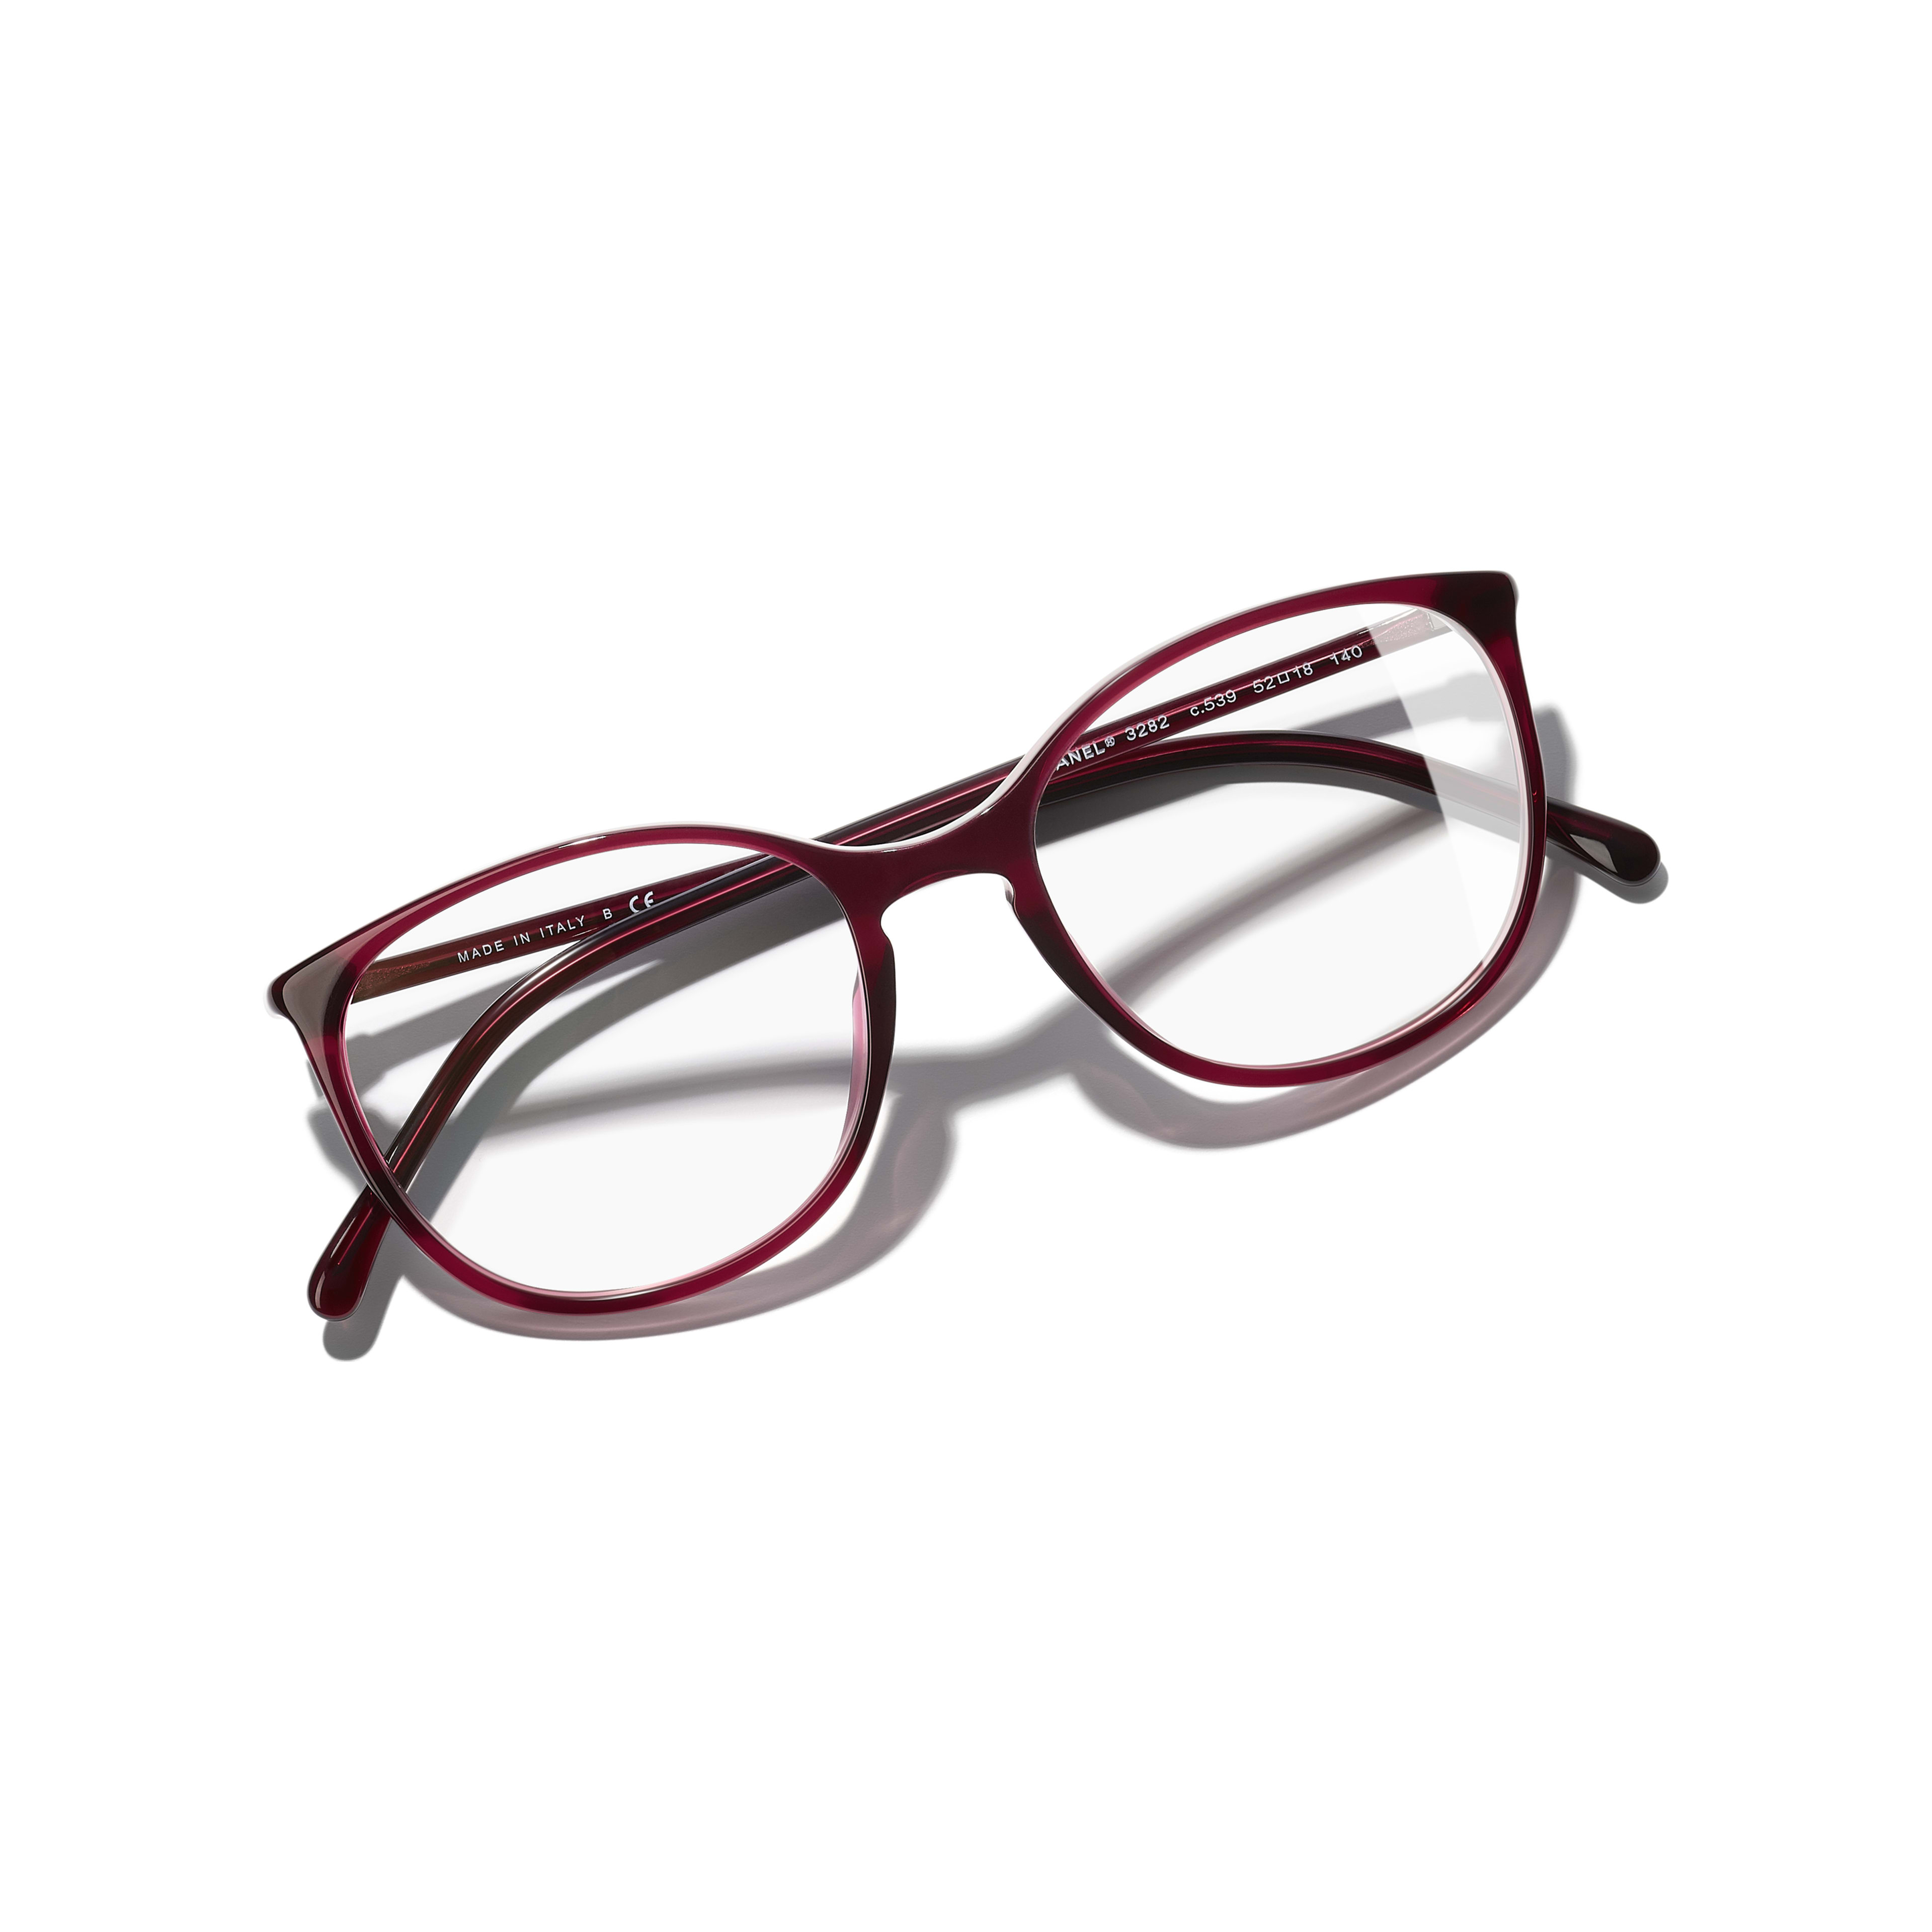 Round Eyeglasses - Red - Acetate - Extra view - see full sized version